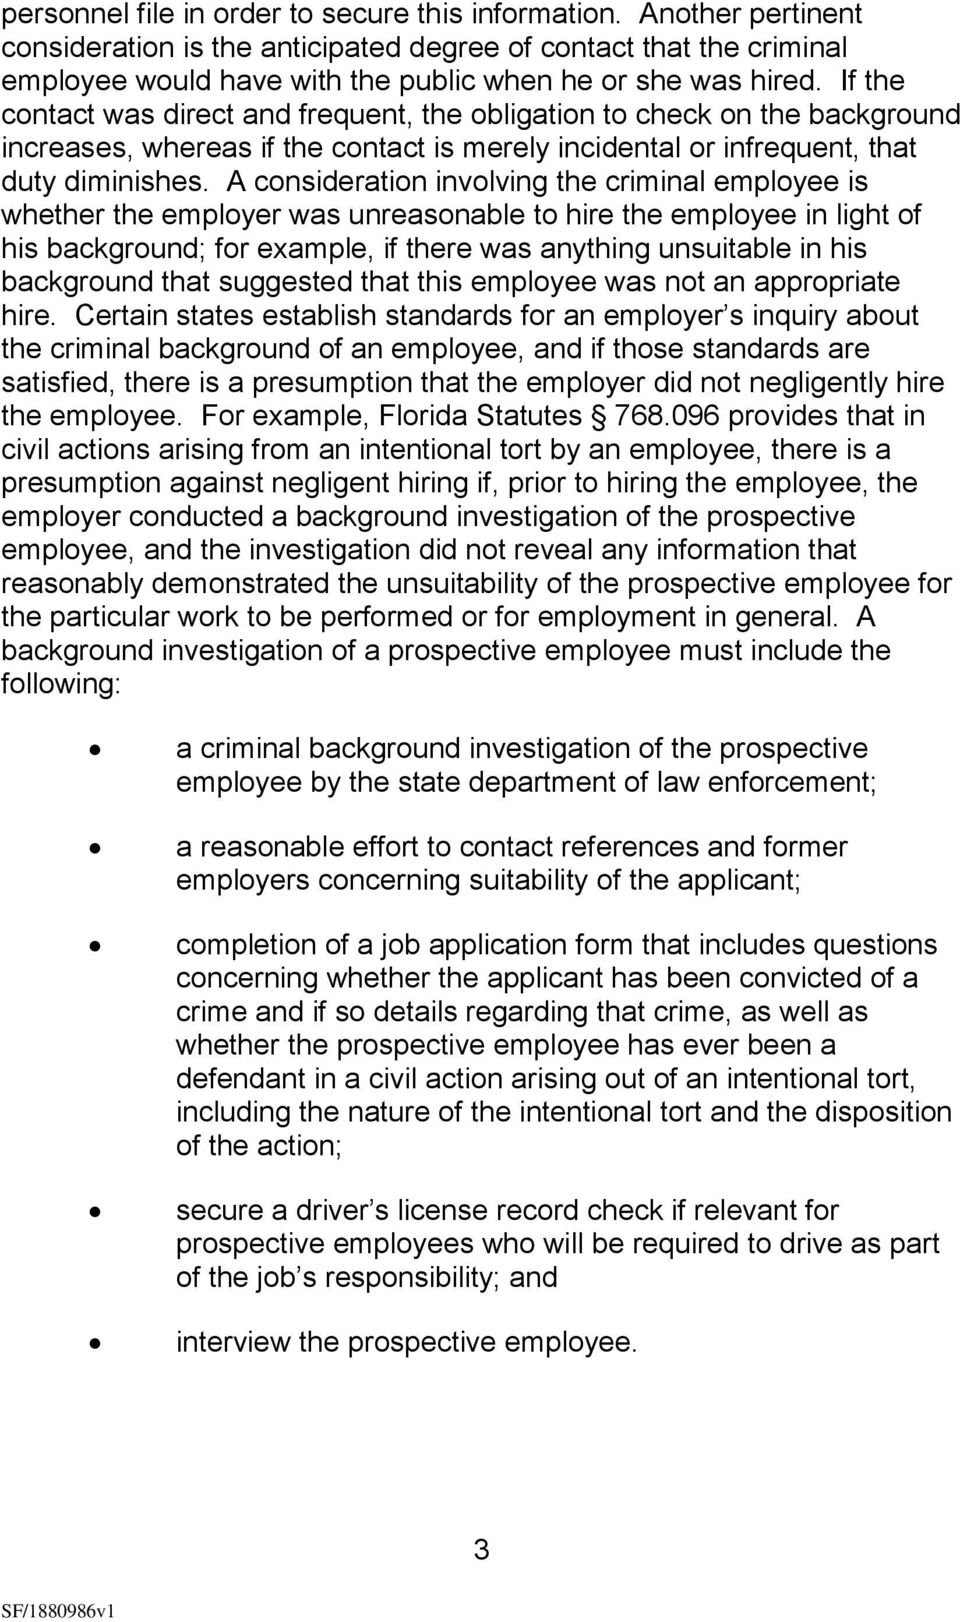 A consideration involving the criminal employee is whether the employer was unreasonable to hire the employee in light of his background; for example, if there was anything unsuitable in his